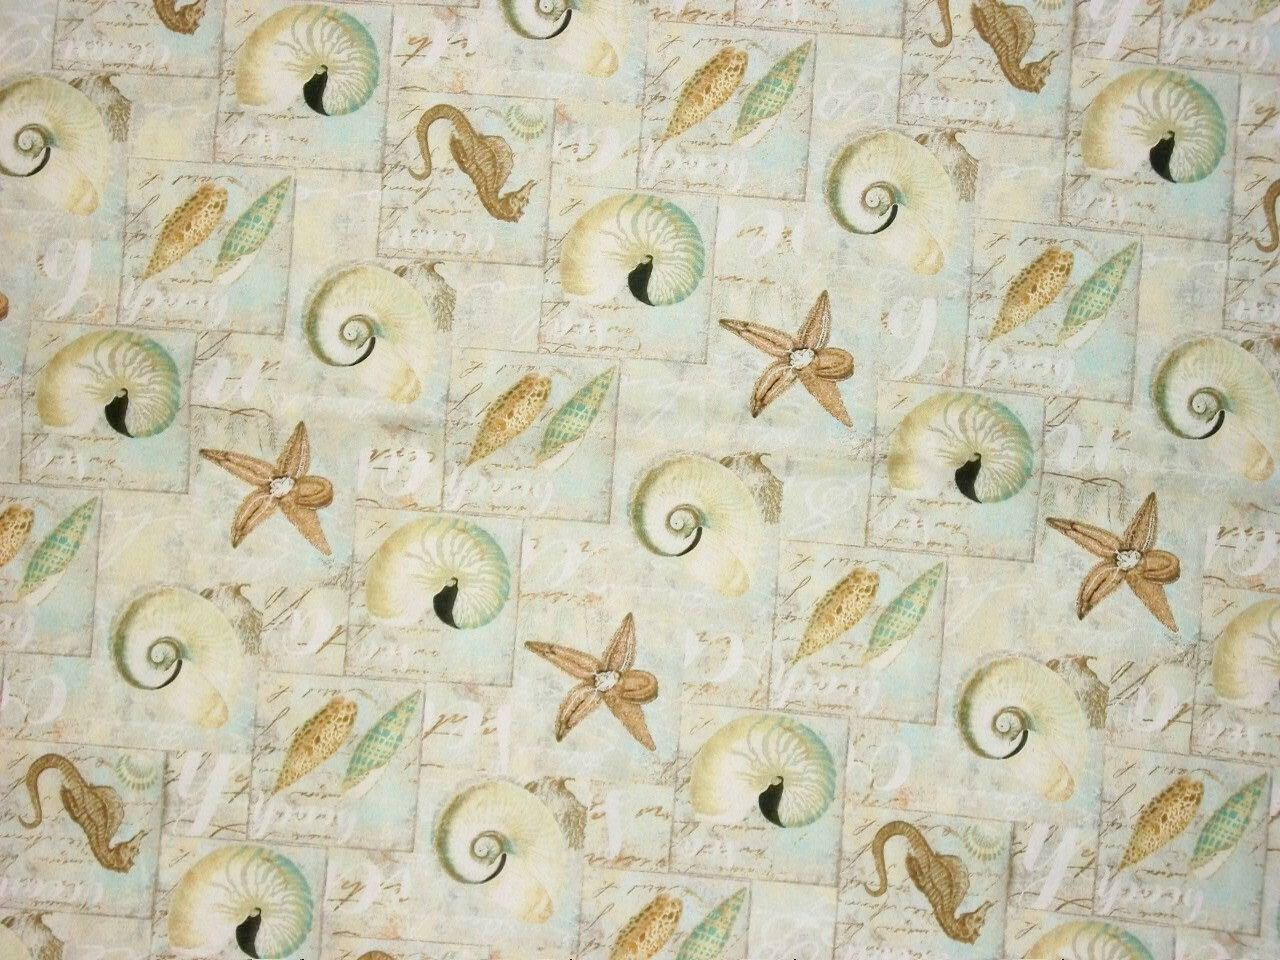 Beach Fabric By The Yard Seashell David Textiles Starfish Quilting Sewing Ocean Seahorse